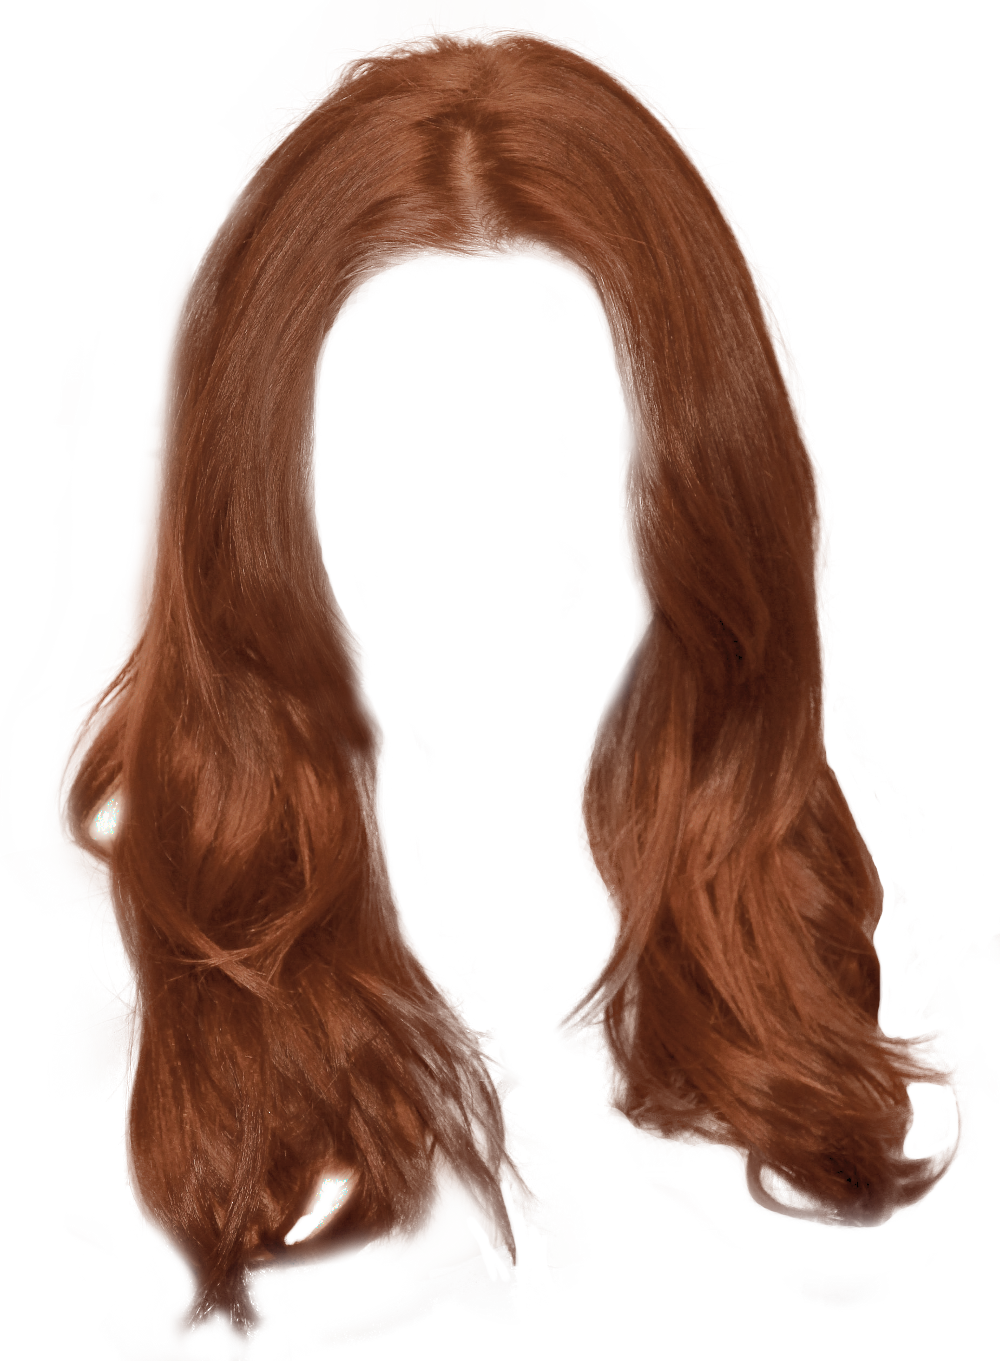 Long Women Hair Png image #26043 - Hairstyles PNG